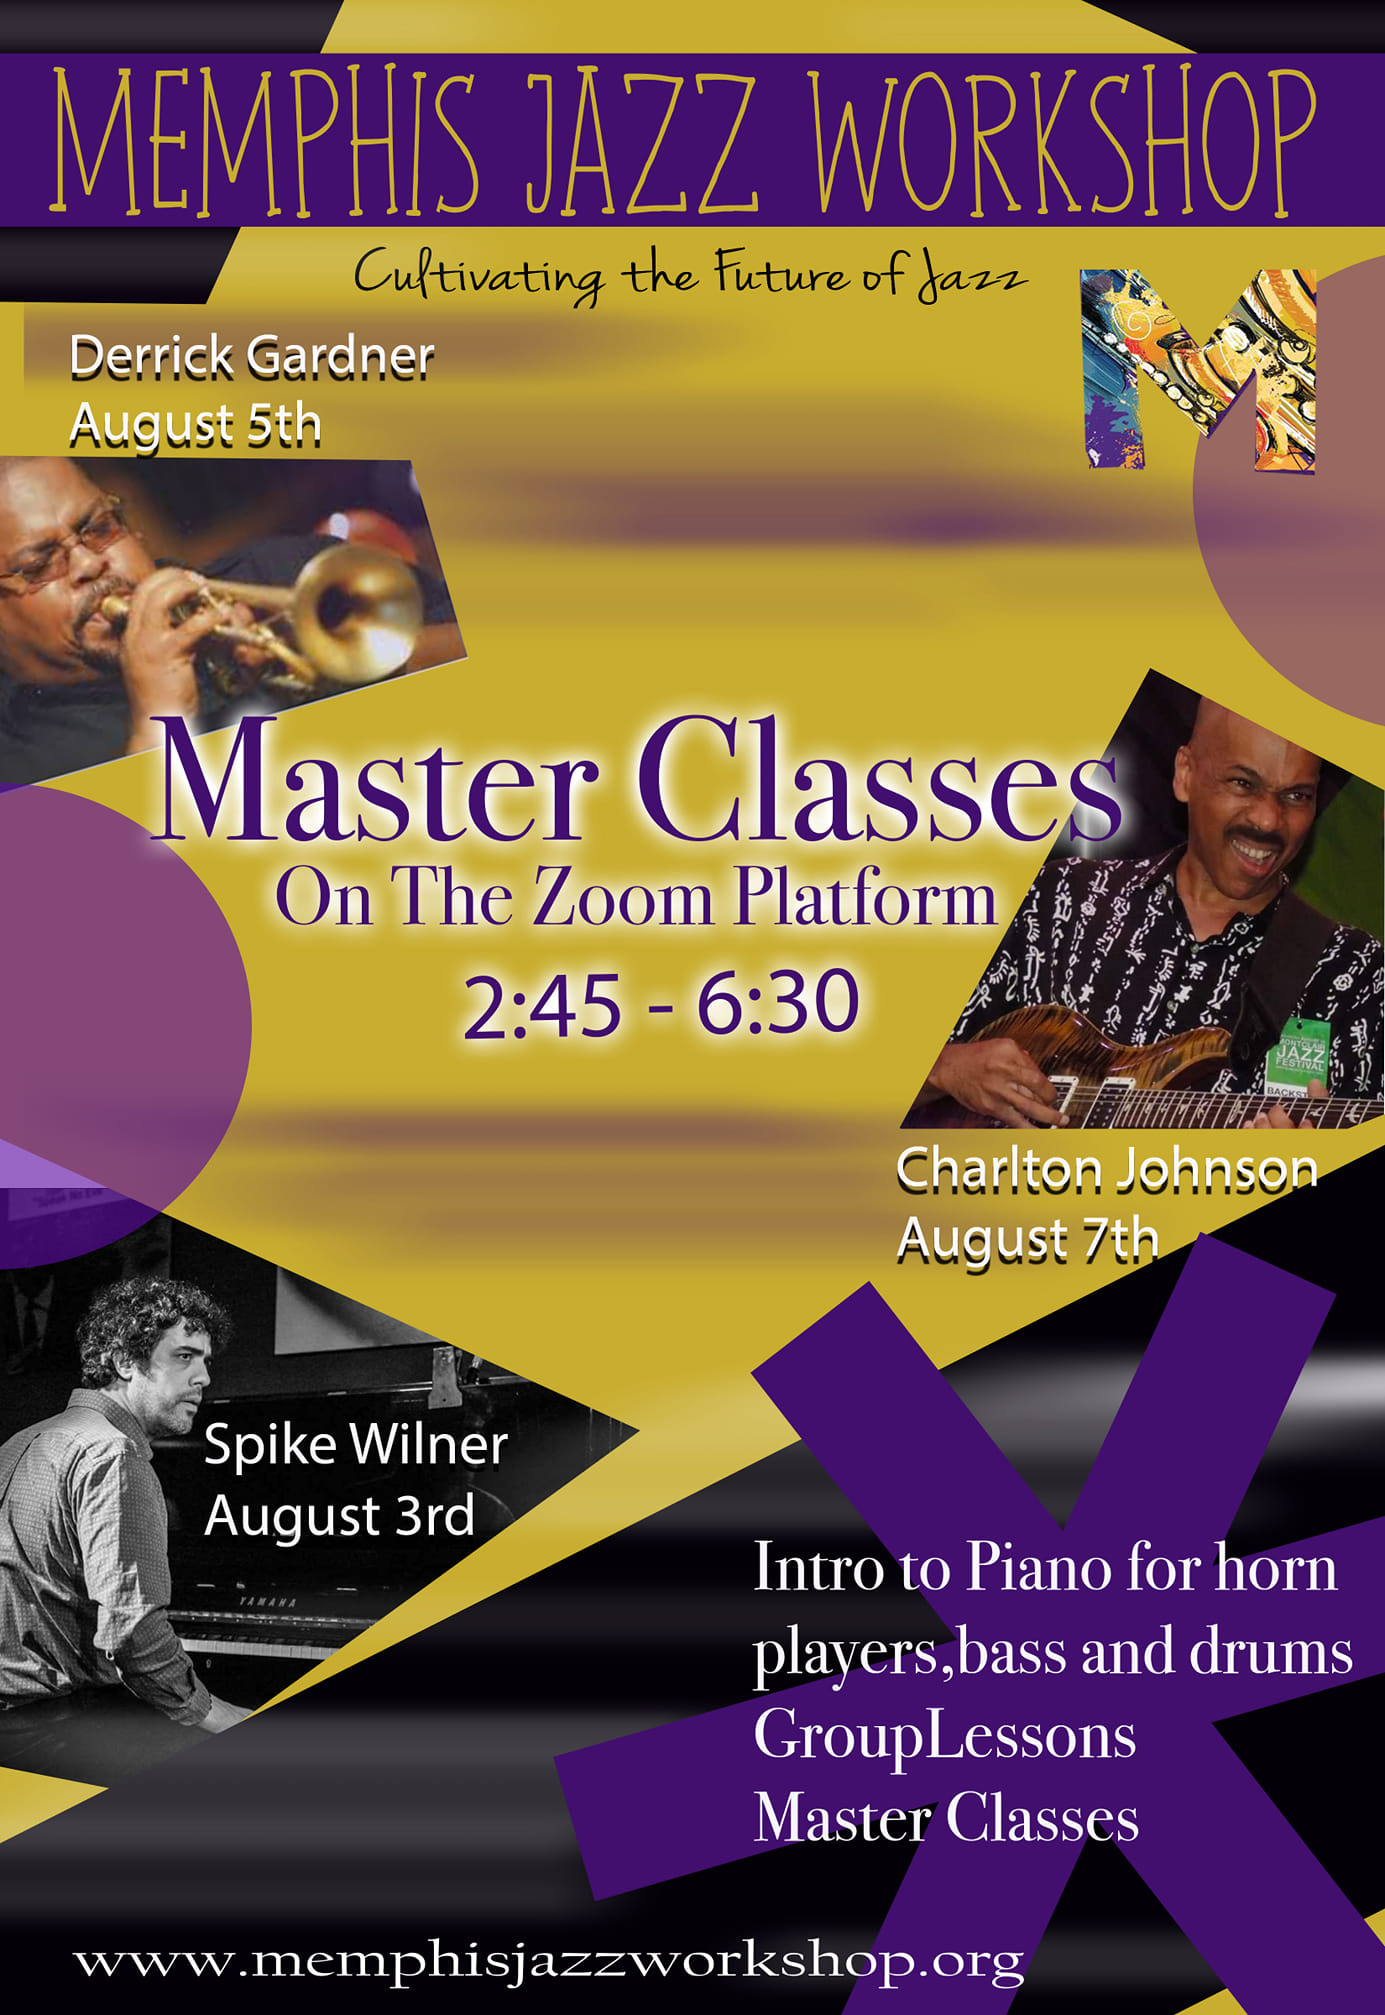 Piano Camp for Horn, Drum, and String players